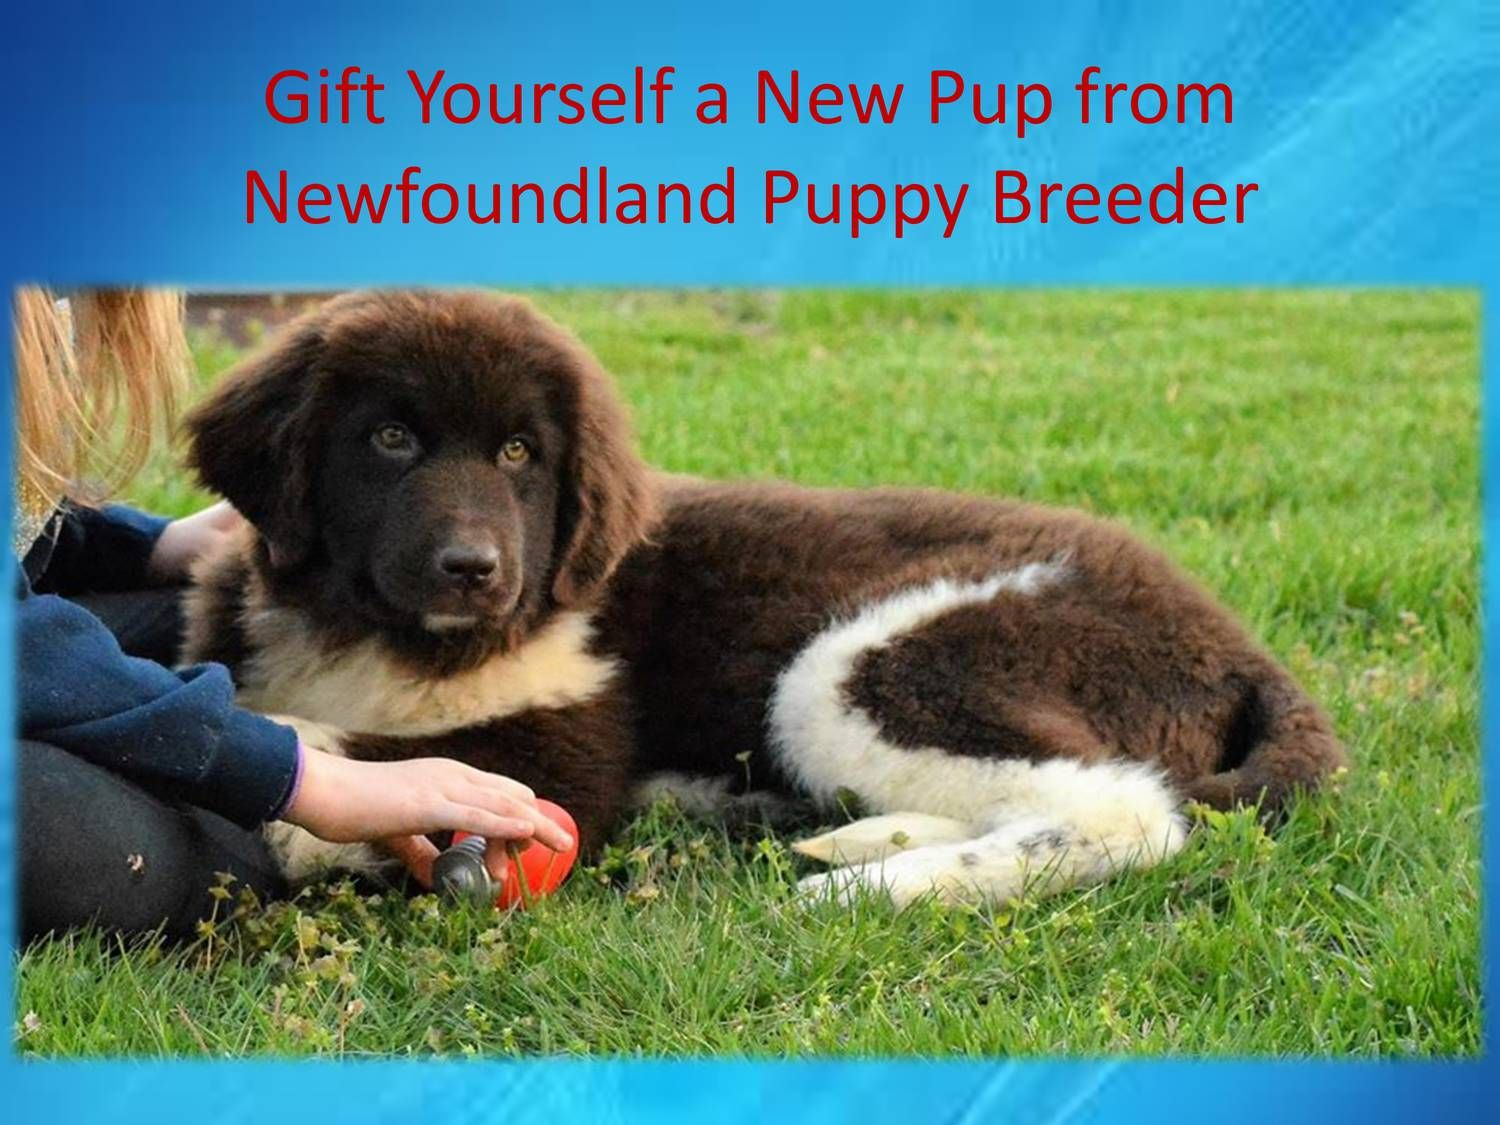 Gift Yourself A New Pup From Newfoundland Puppy Breeder Pptx Newfoundland Puppies Puppies Dog Breeder